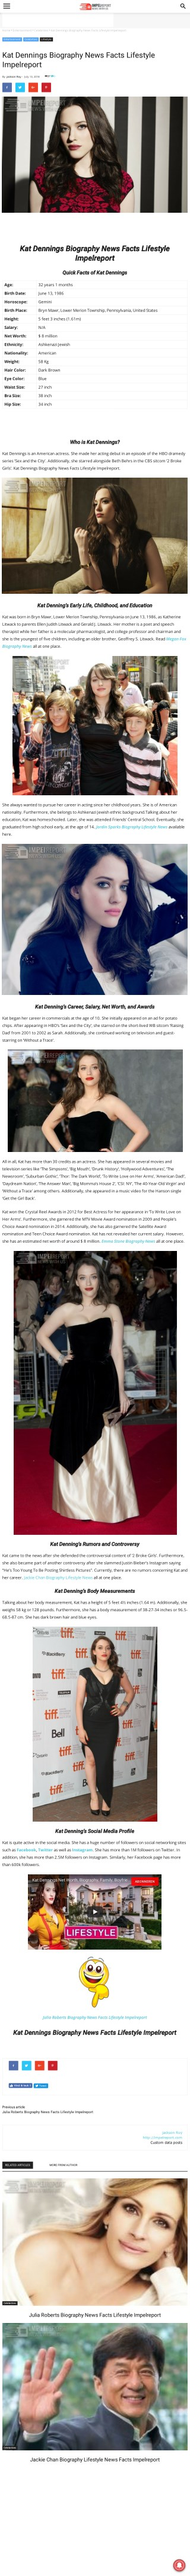 Kat Dennings Biography News Facts Lifestyle Impelreport